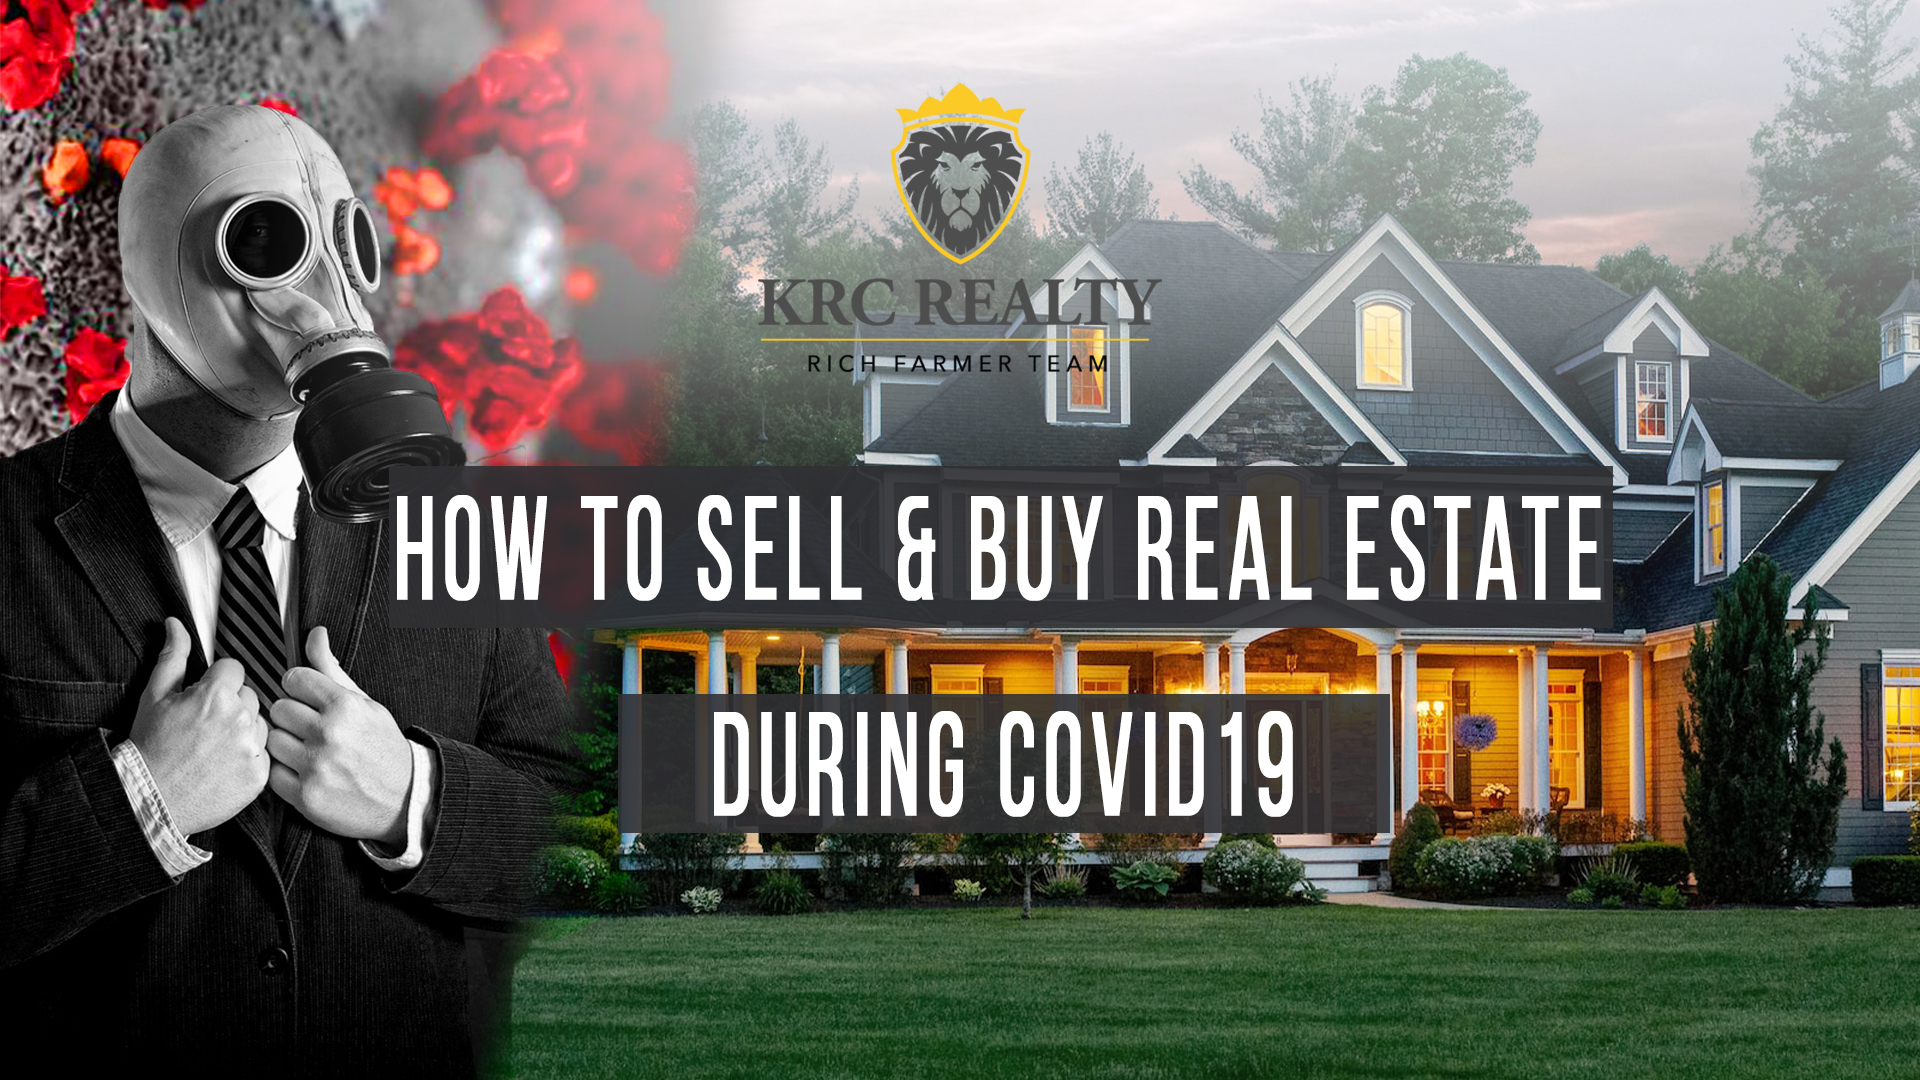 WAYS TO BUY AND SELL HOMES DURING COVID19!